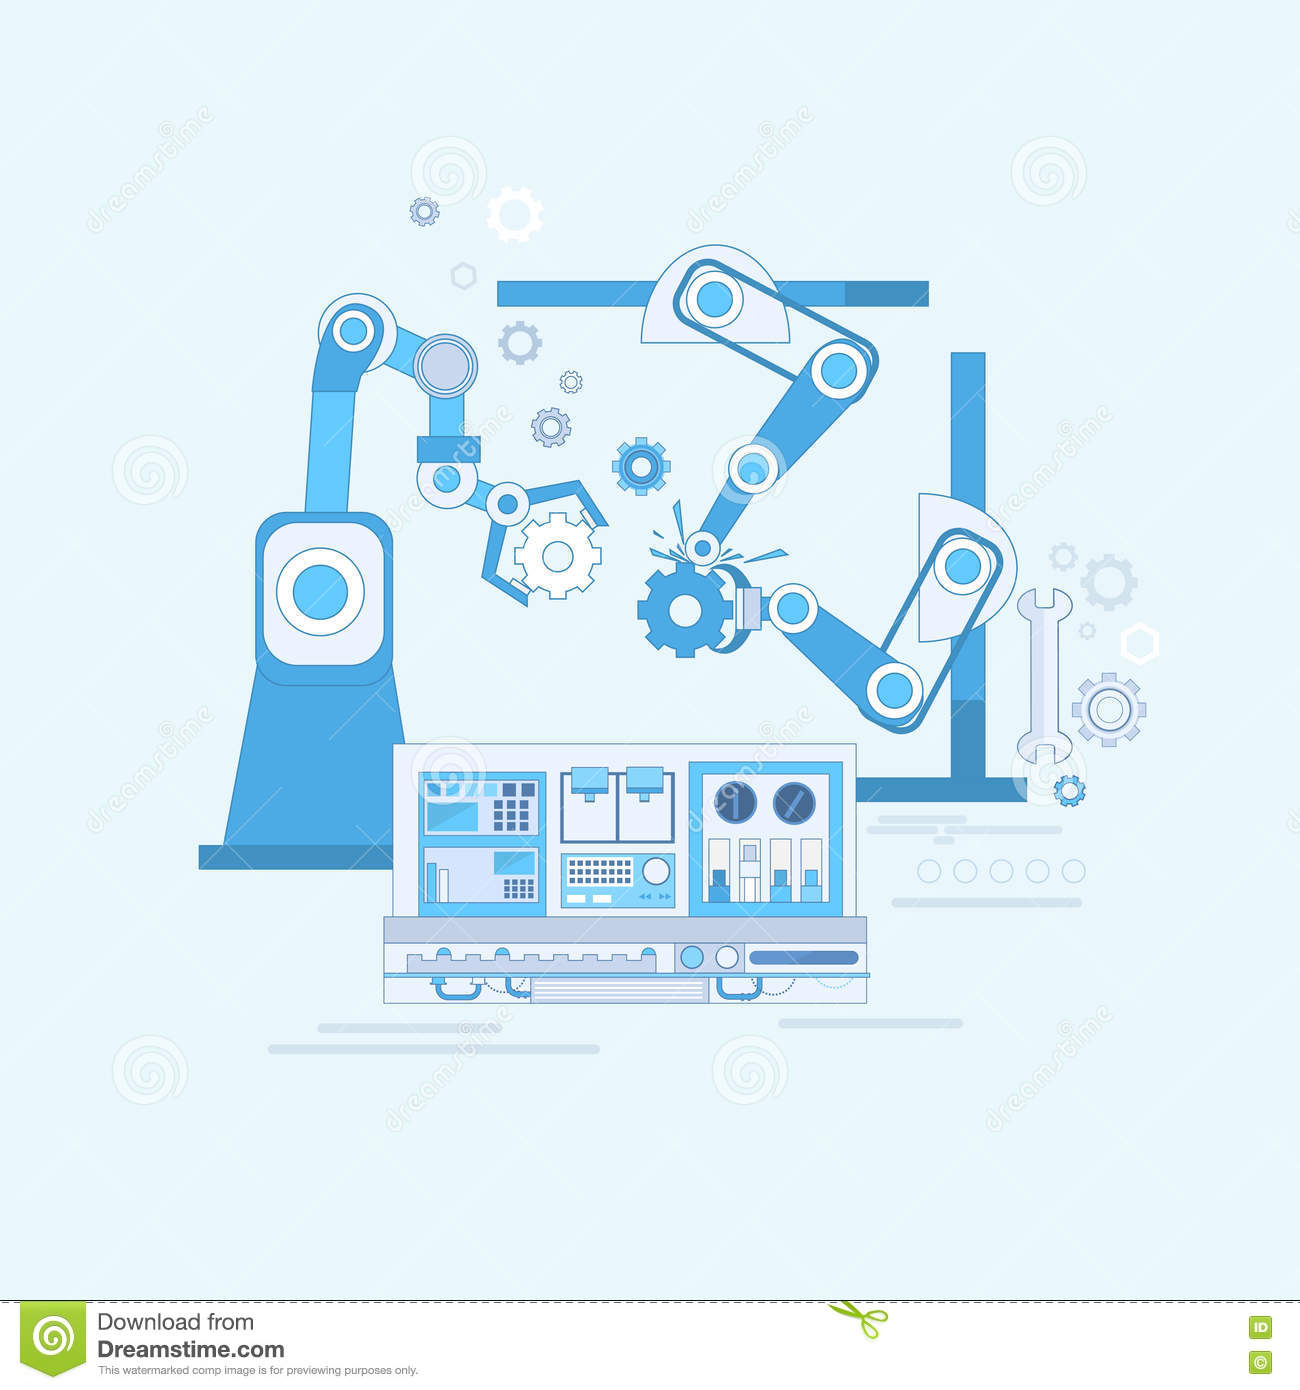 automation in production vector illustration Heavy Equipment Clip Art Heavy Equipment Clip Art